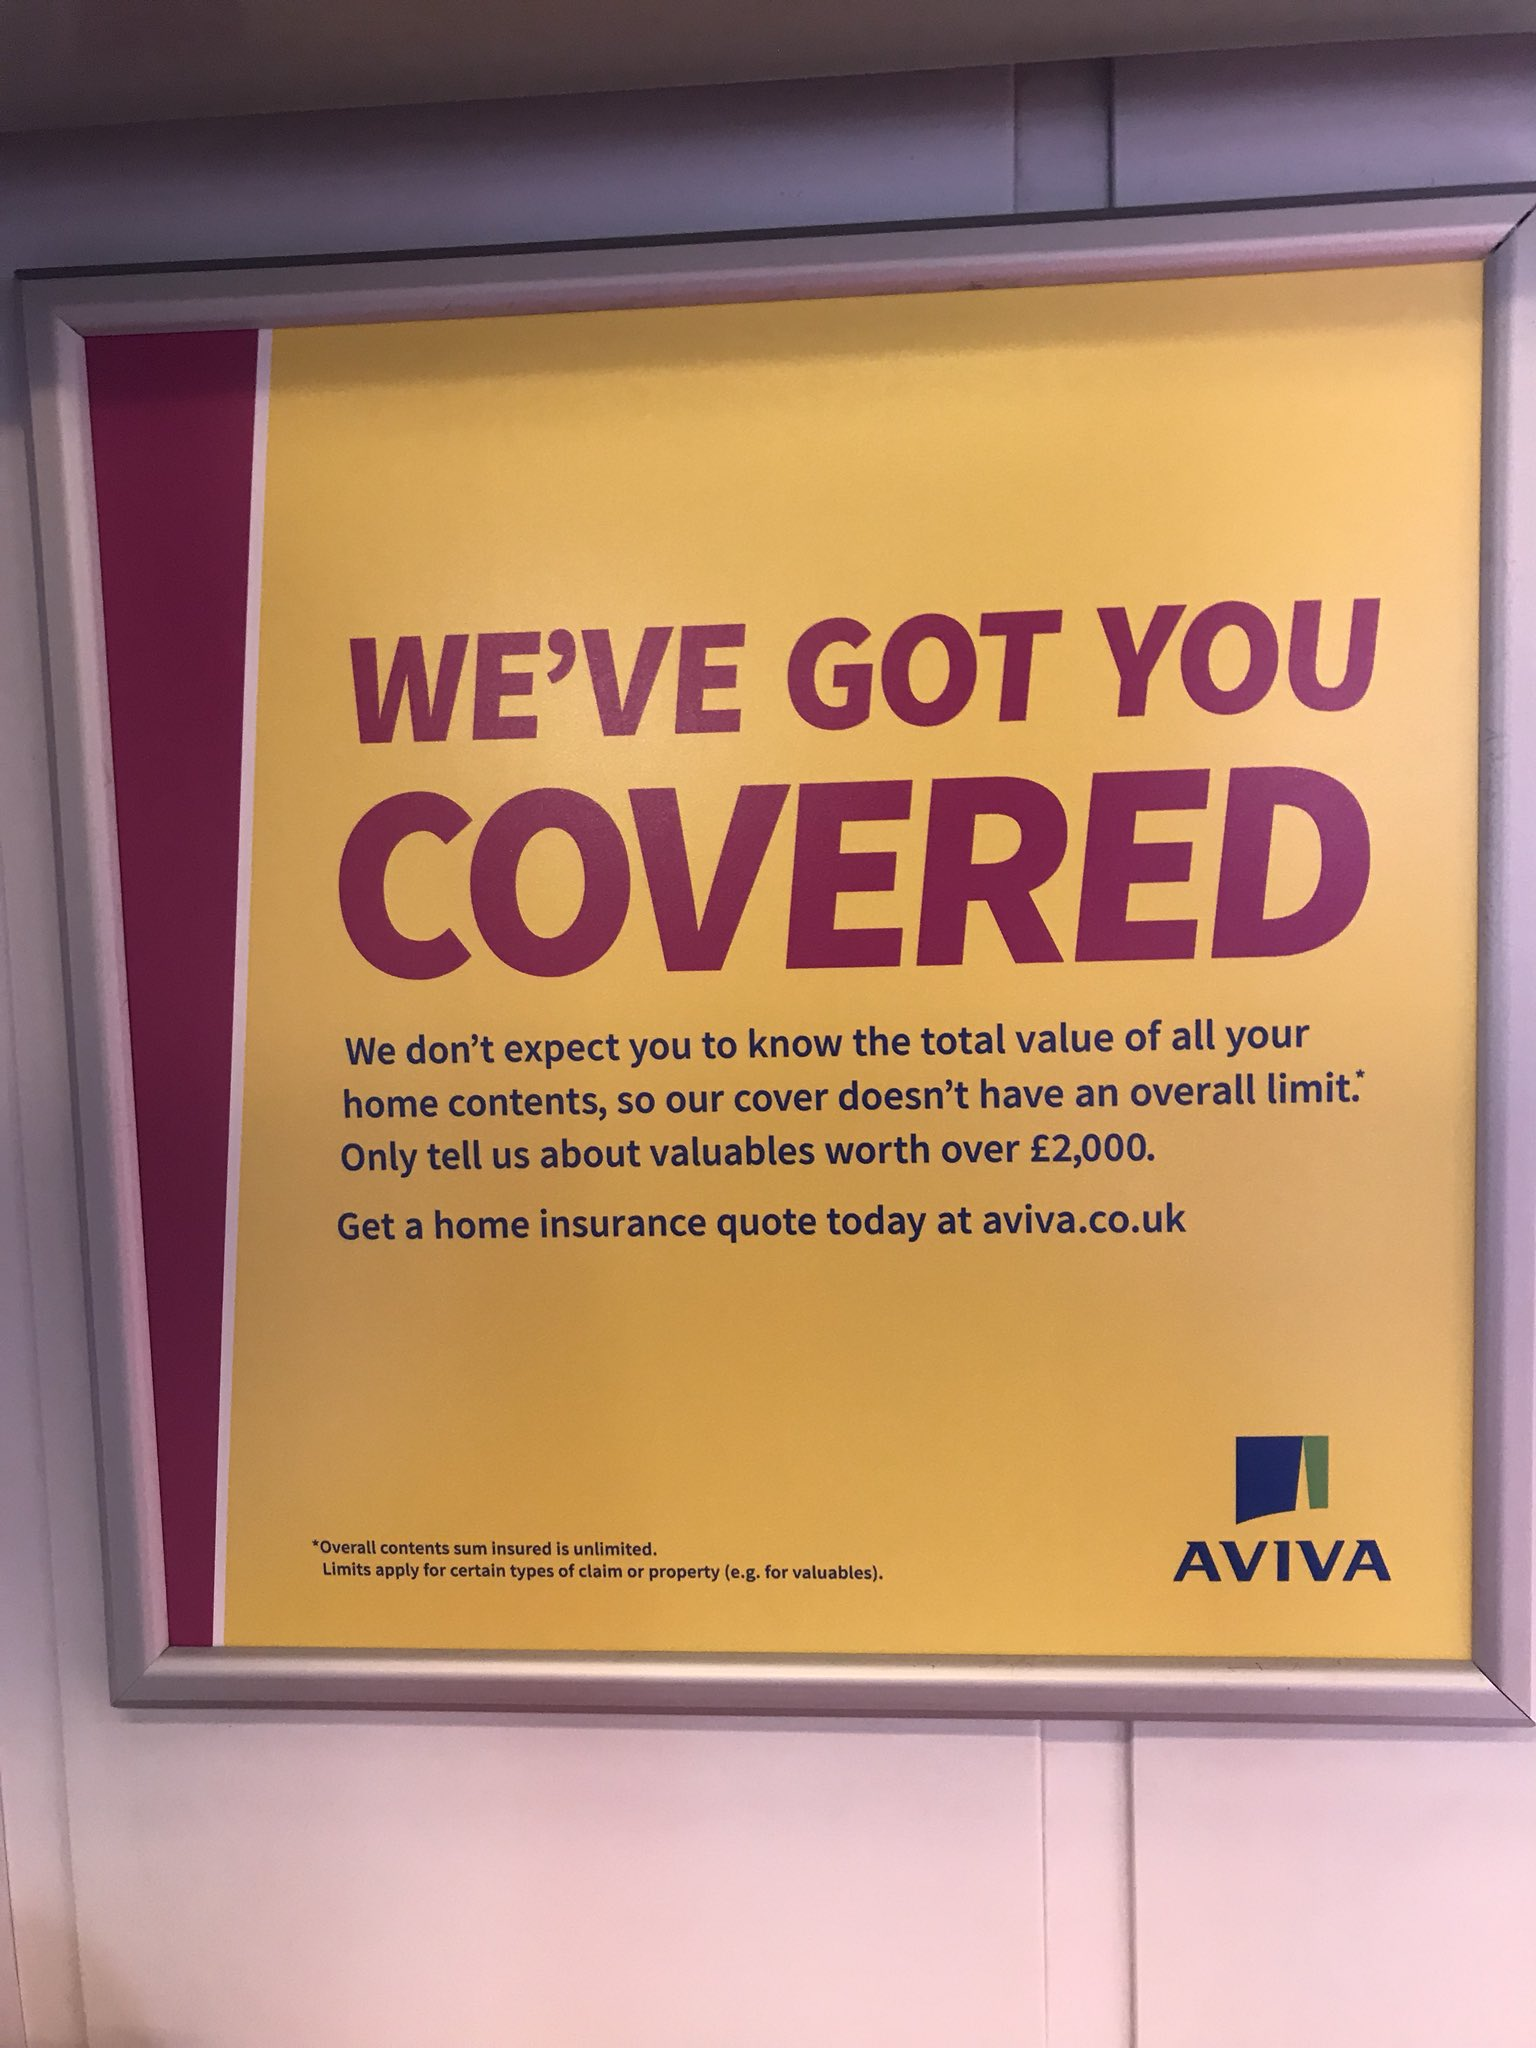 Farid Ul Haque On Twitter Love The Super Confusing Ad From Aviva On The Train We Don T Expect You To Know The Value Of Your Home Contents Only Tell Us About Valuables Worth